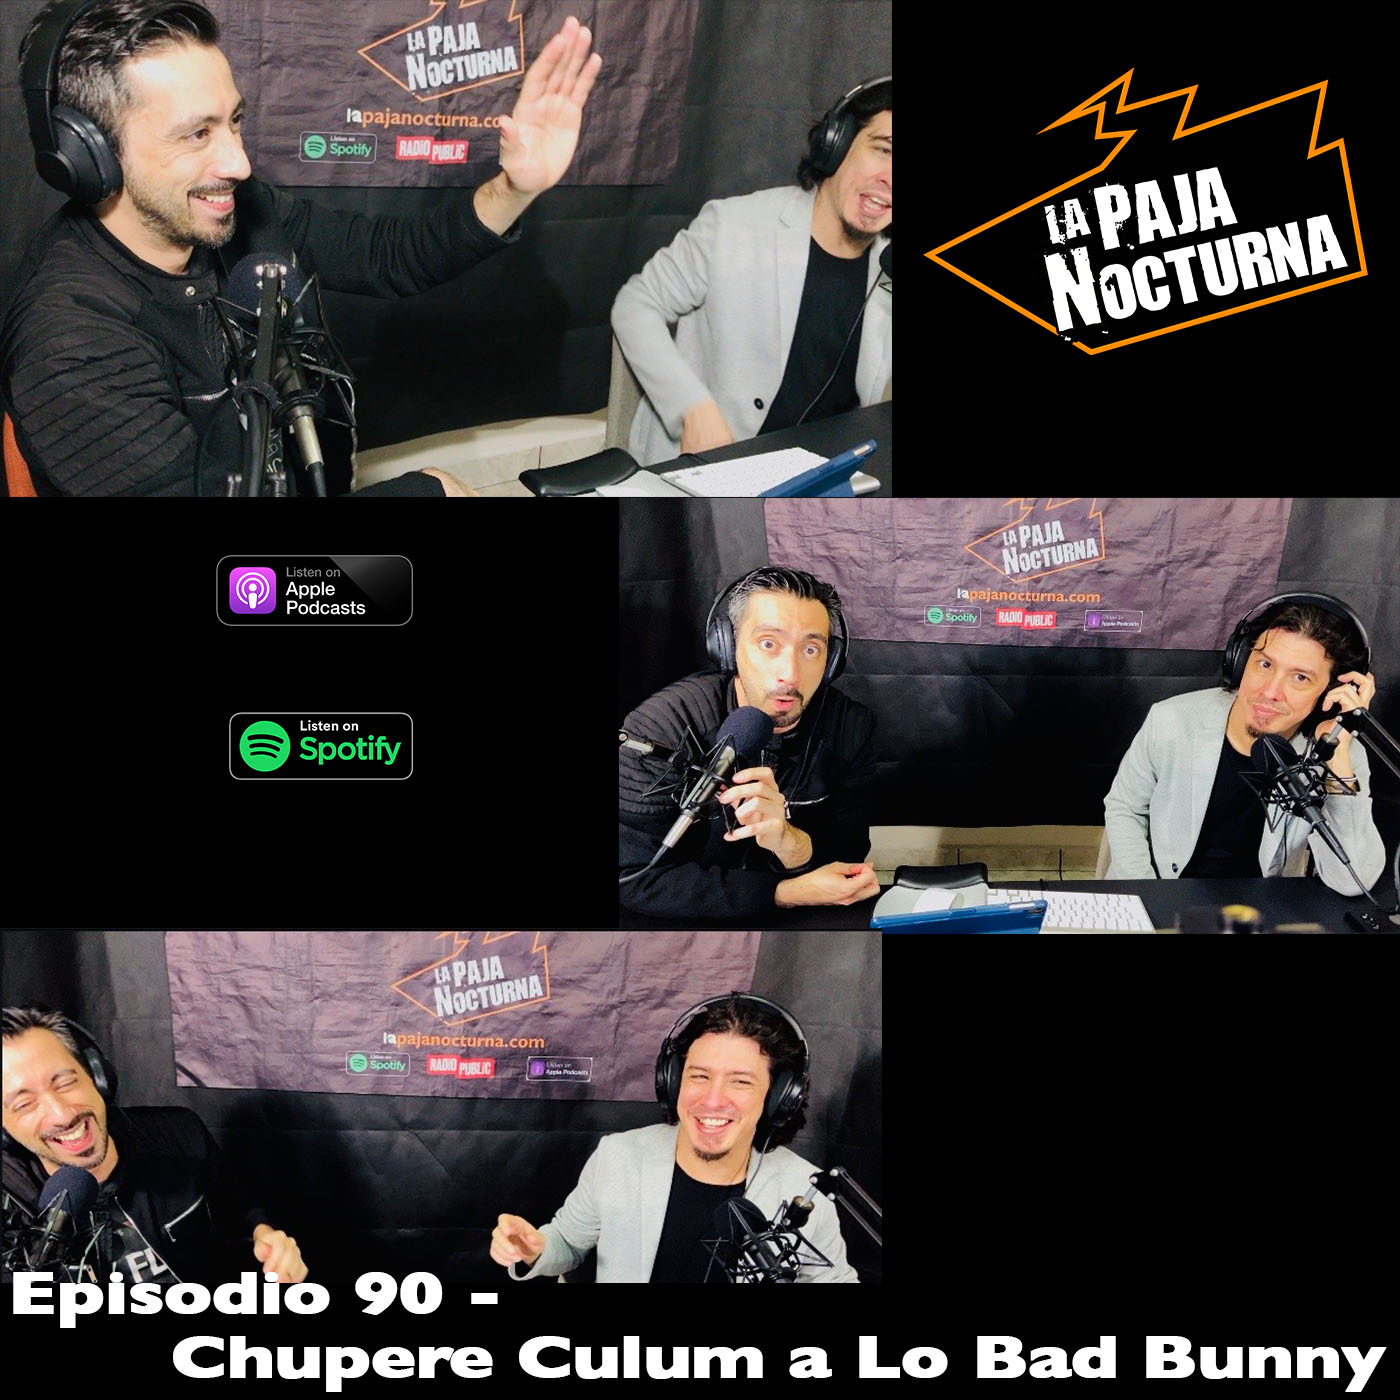 La paja nocturna podcast Episodio 90